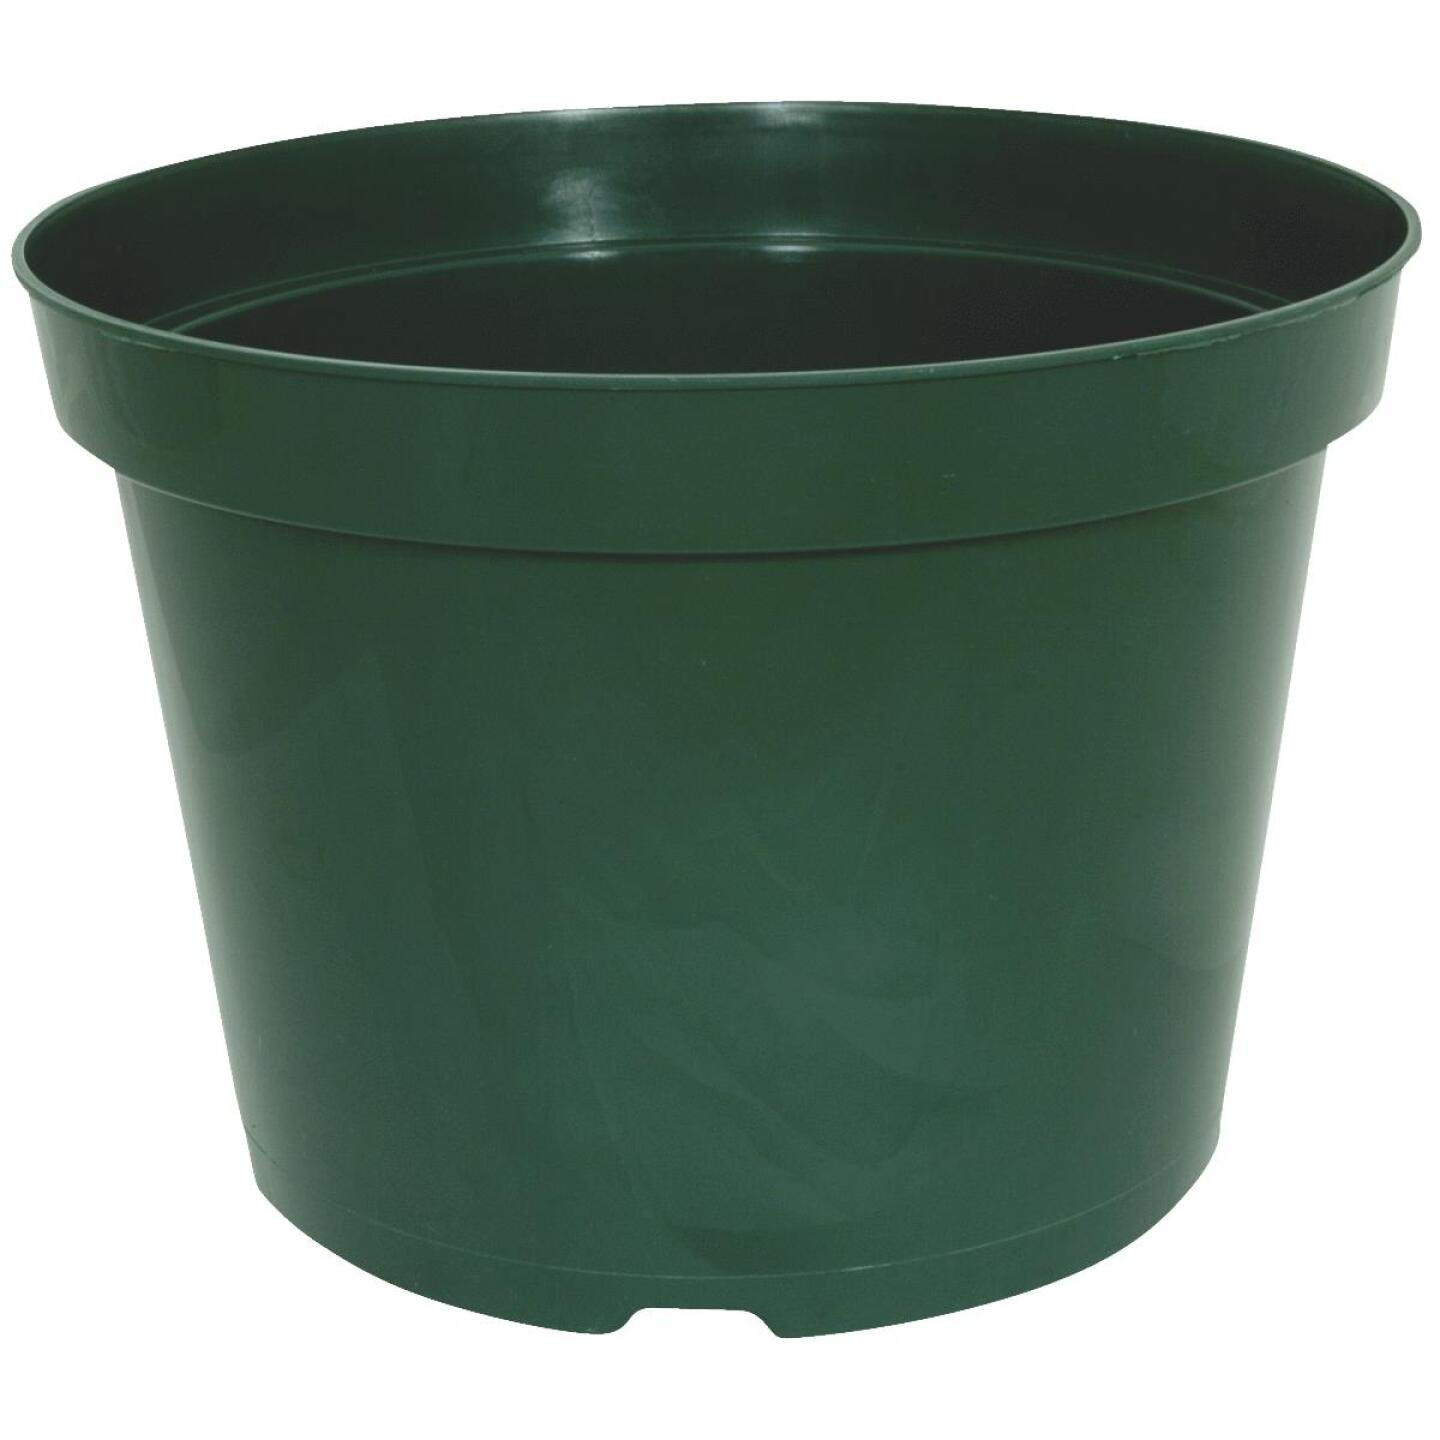 Myers 3-1/2 In. H x 4 In. Dia. Green Poly Flower Pot Image 1